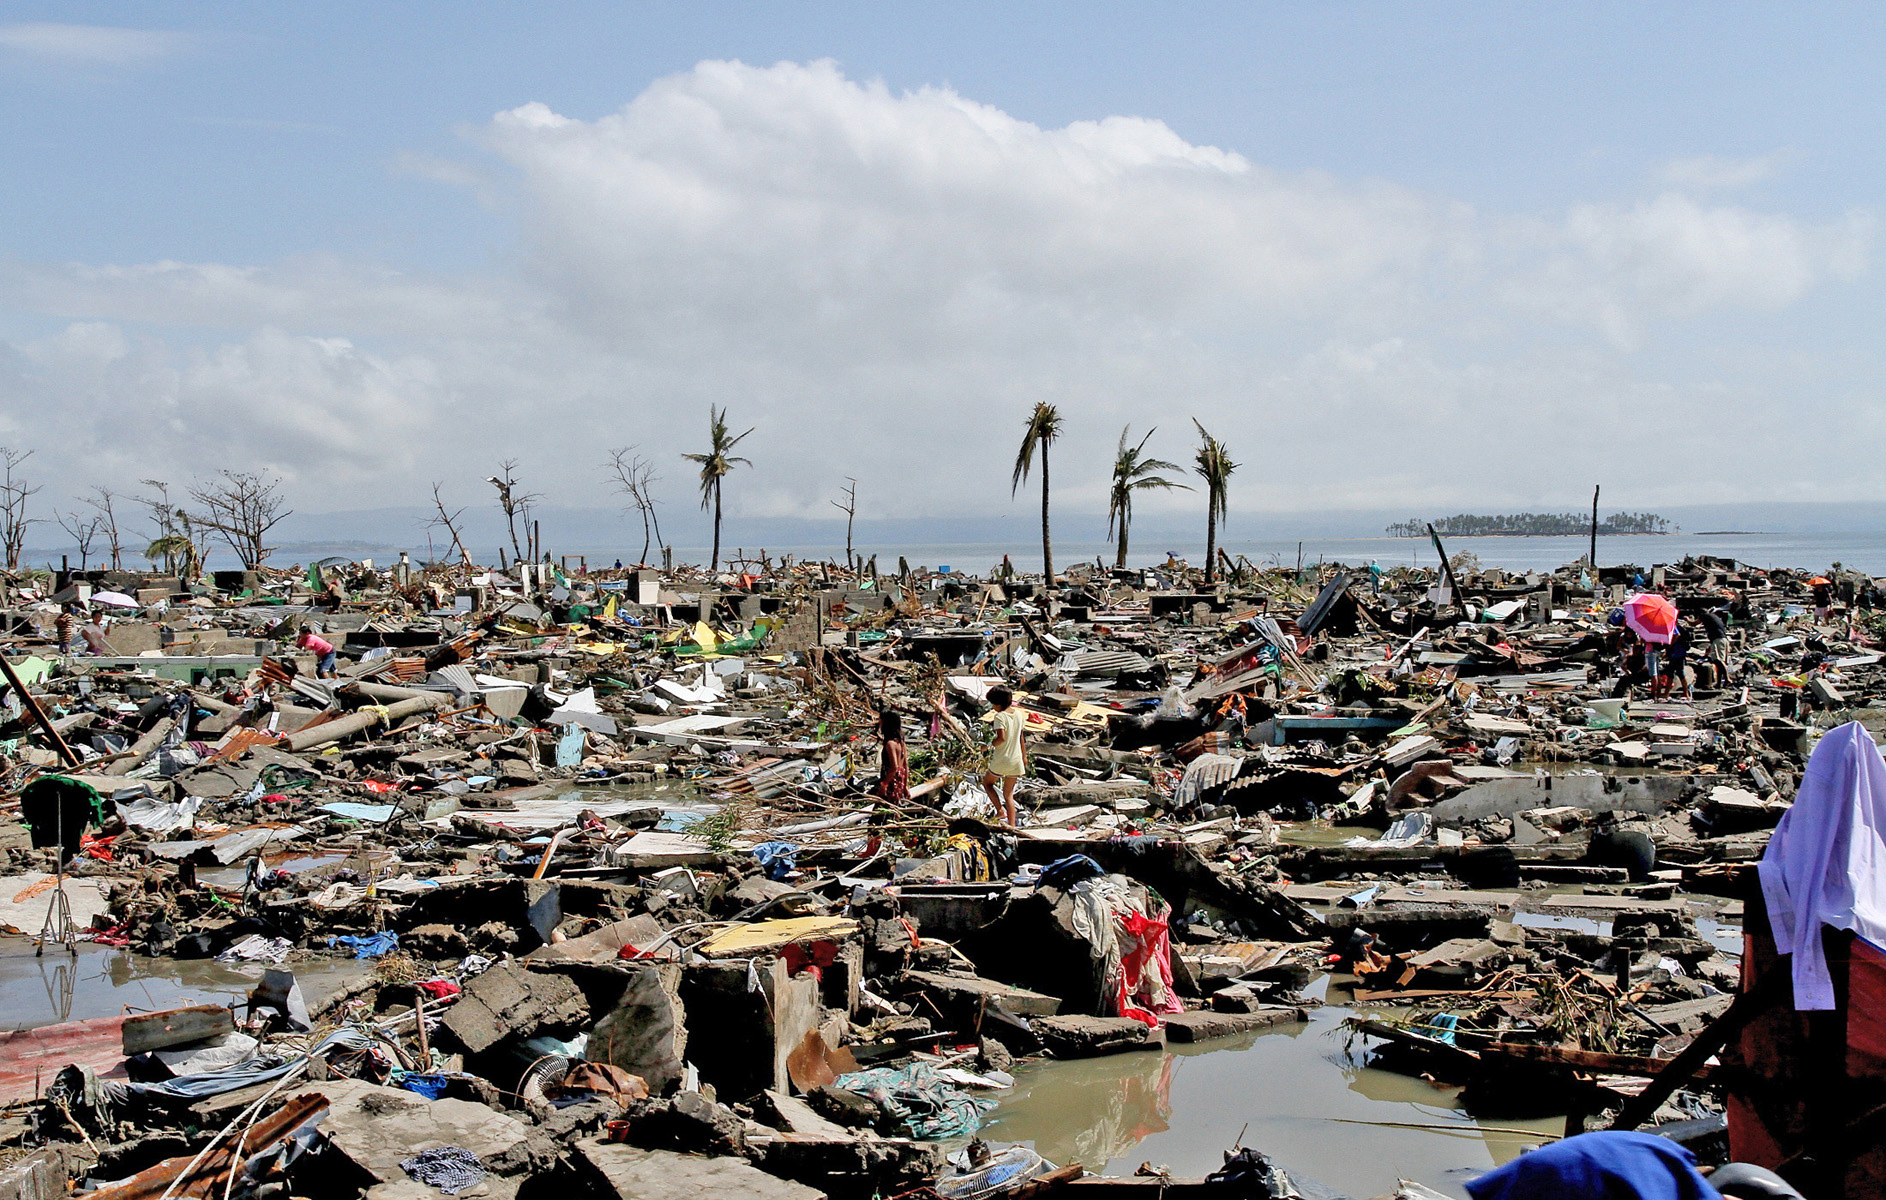 Mass devastation in the wake of Typhoon Haiyan, which struck the central Philippines, on 8 November impacting over 13 million and leaving 4 million displaced